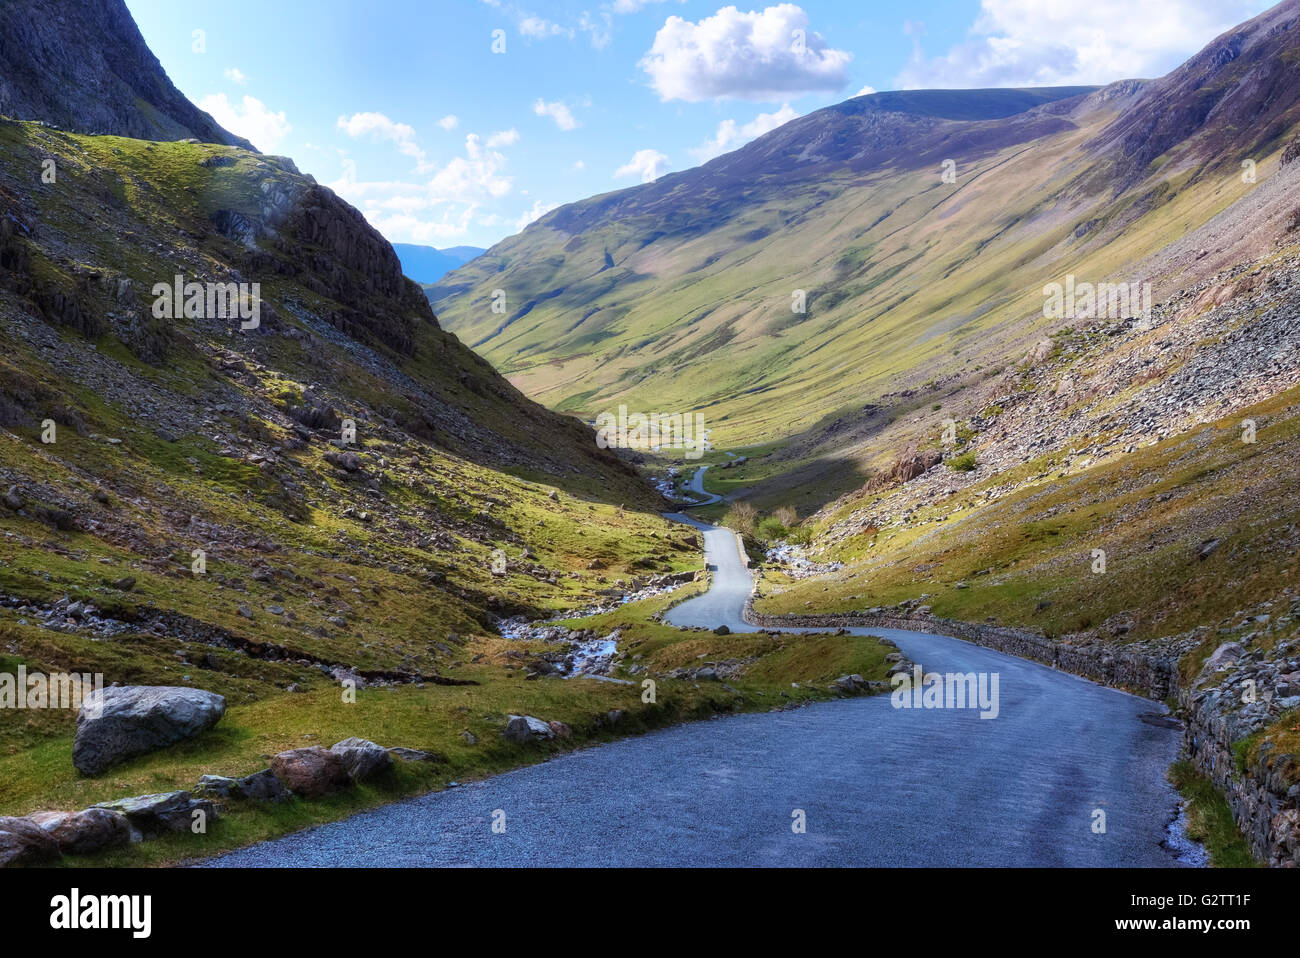 Honister Pass, Lake District, Cumbria, England, UK - Stock Image